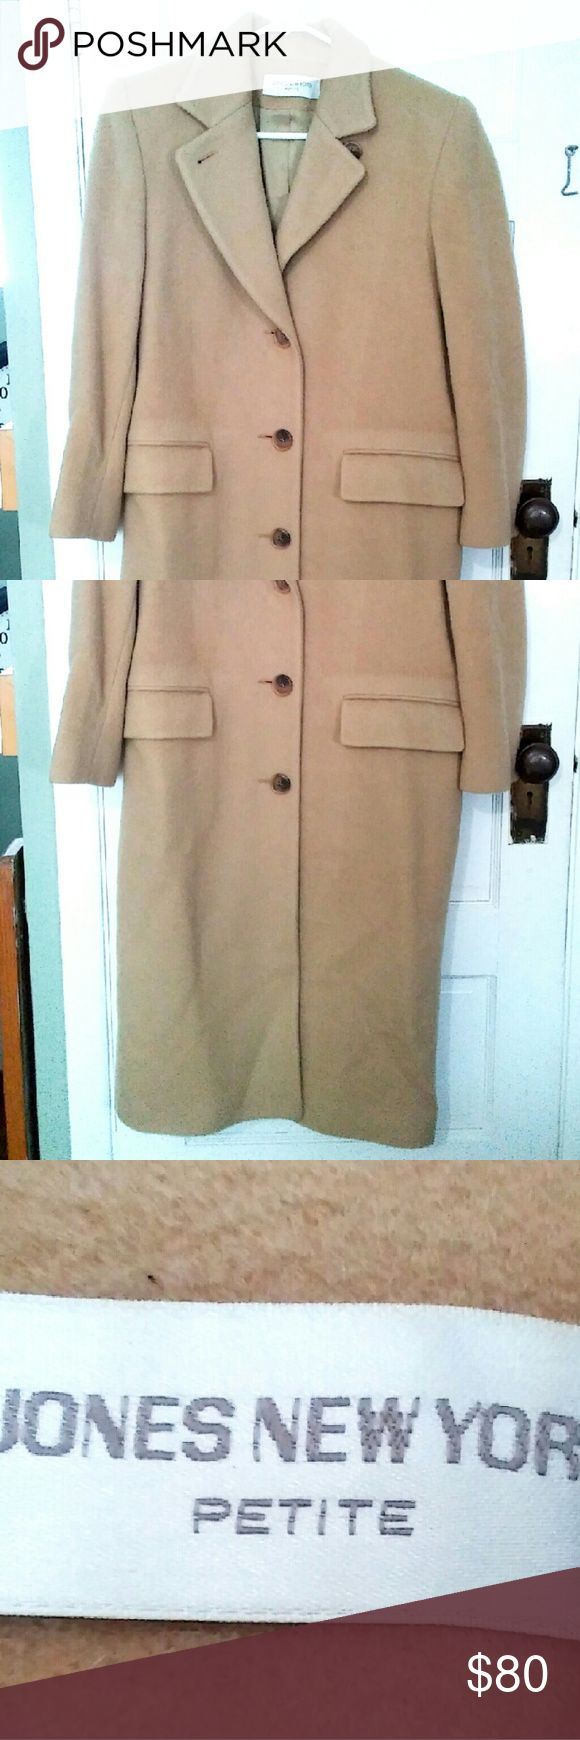 Jones New York Petite Trench Coat Nice long and neutral color to this coat. It is made with a fluffy type of fur on the outside. Jones New York Jackets & Coats Trench Coats